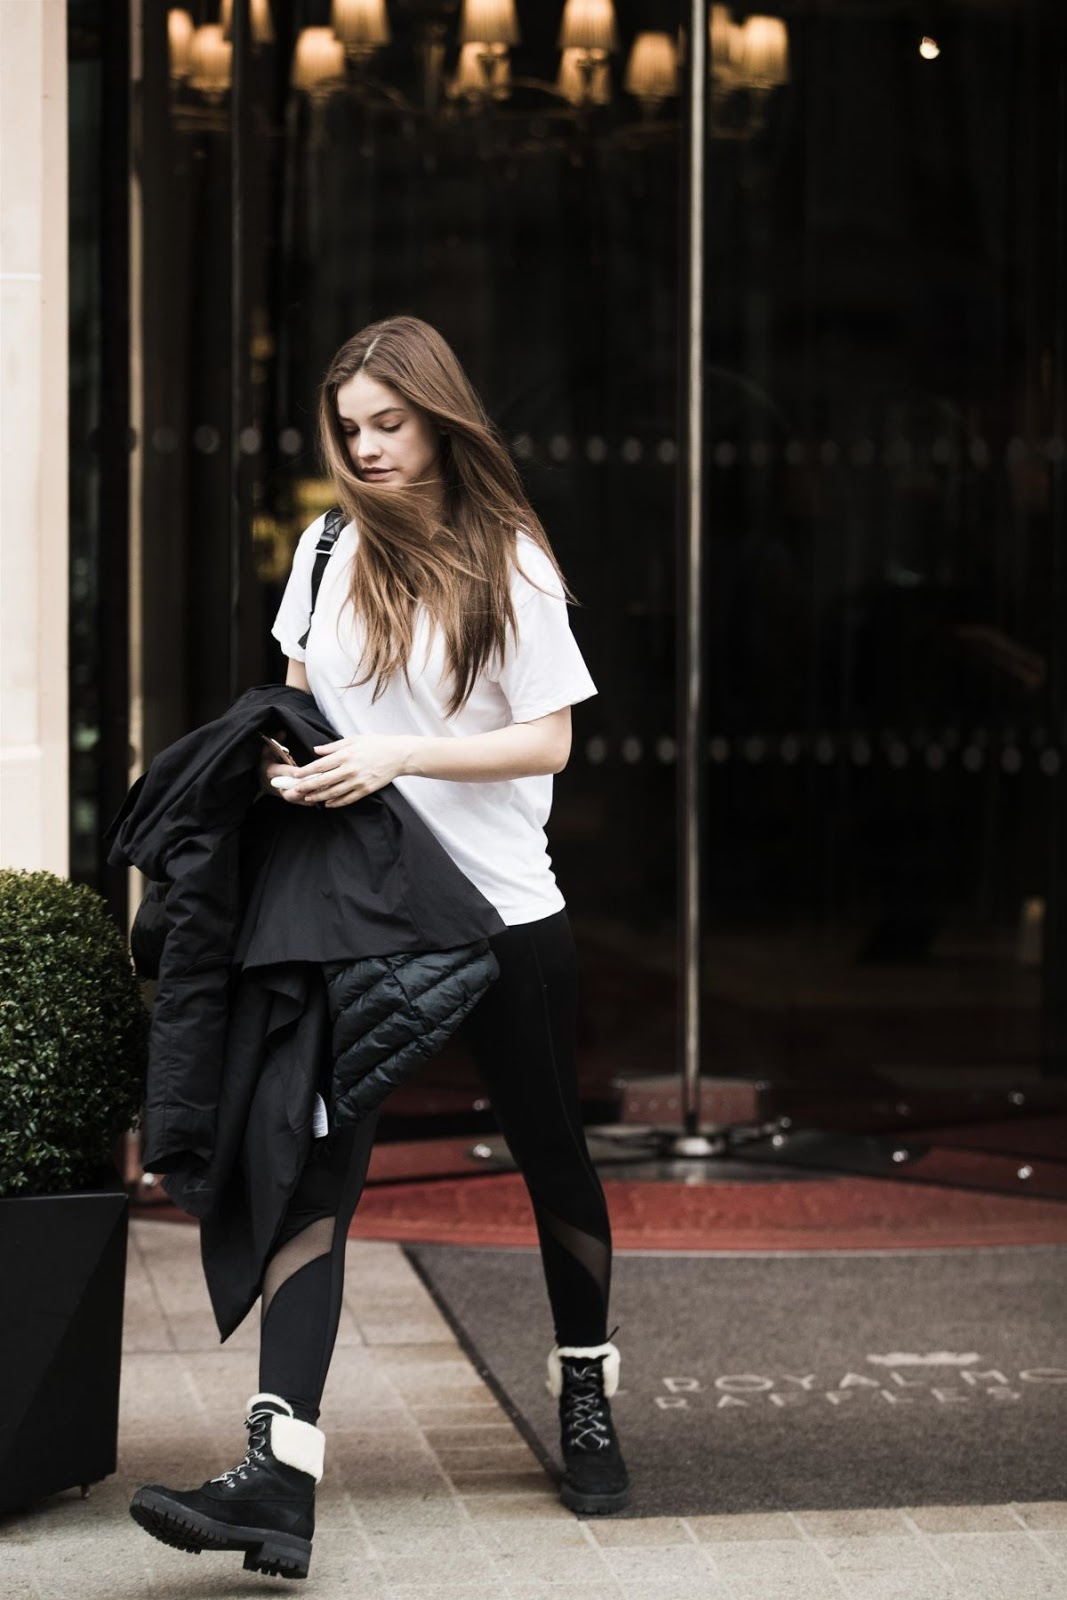 Barbara Palvin Leaves Royal Monceau Hotel in Paris - 02/06/2019